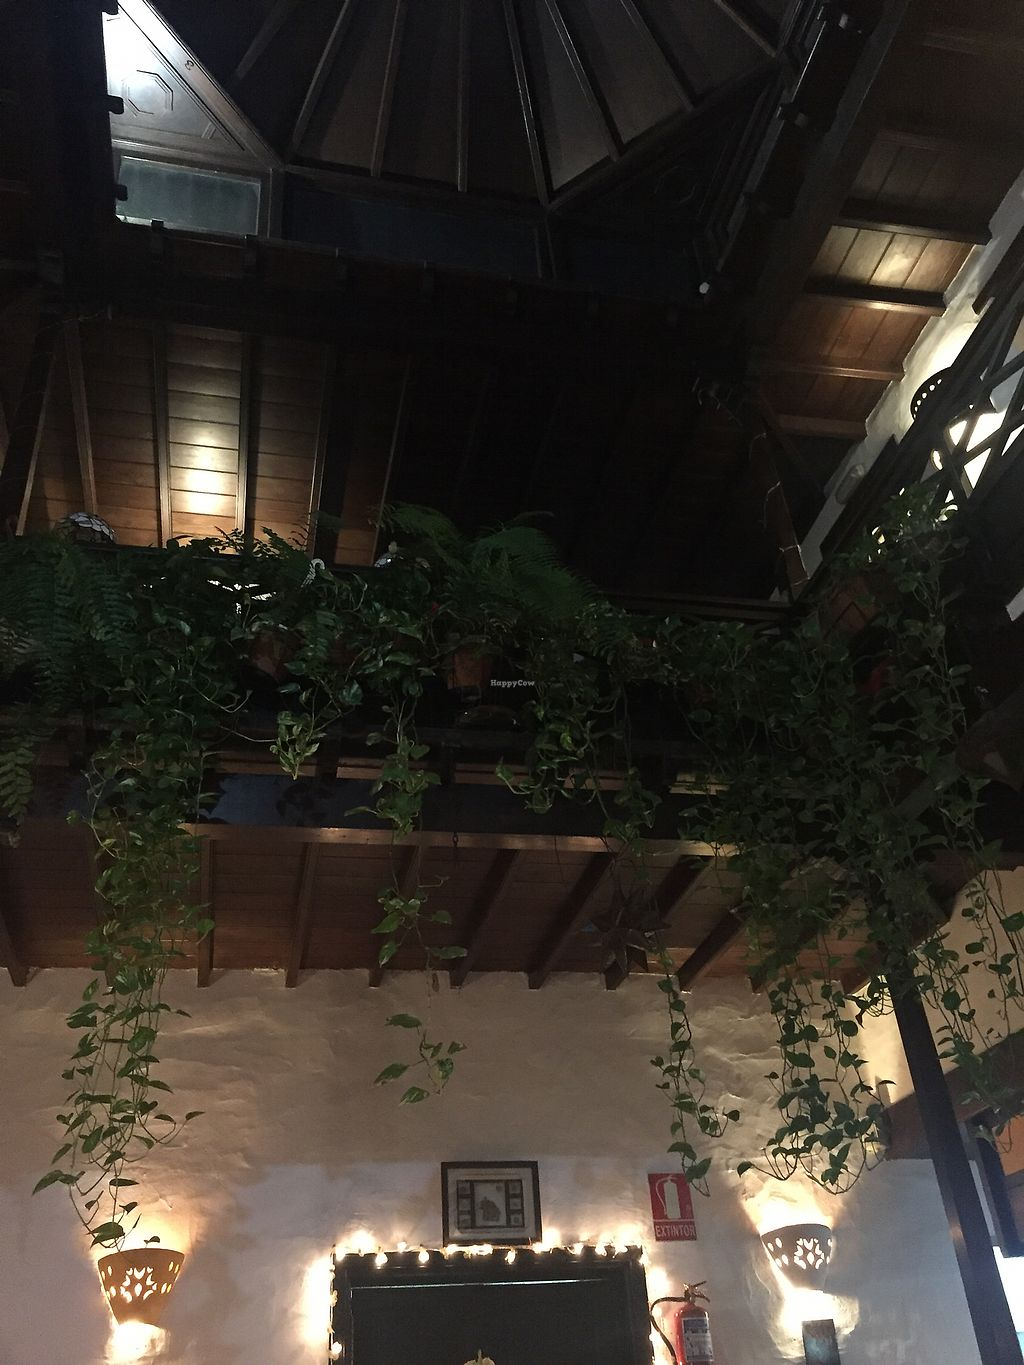 """Photo of Bozena's Bar and Restaurant  by <a href=""""/members/profile/marcellesendrine"""">marcellesendrine</a> <br/>soo cosy !  <br/> December 30, 2017  - <a href='/contact/abuse/image/9500/341063'>Report</a>"""